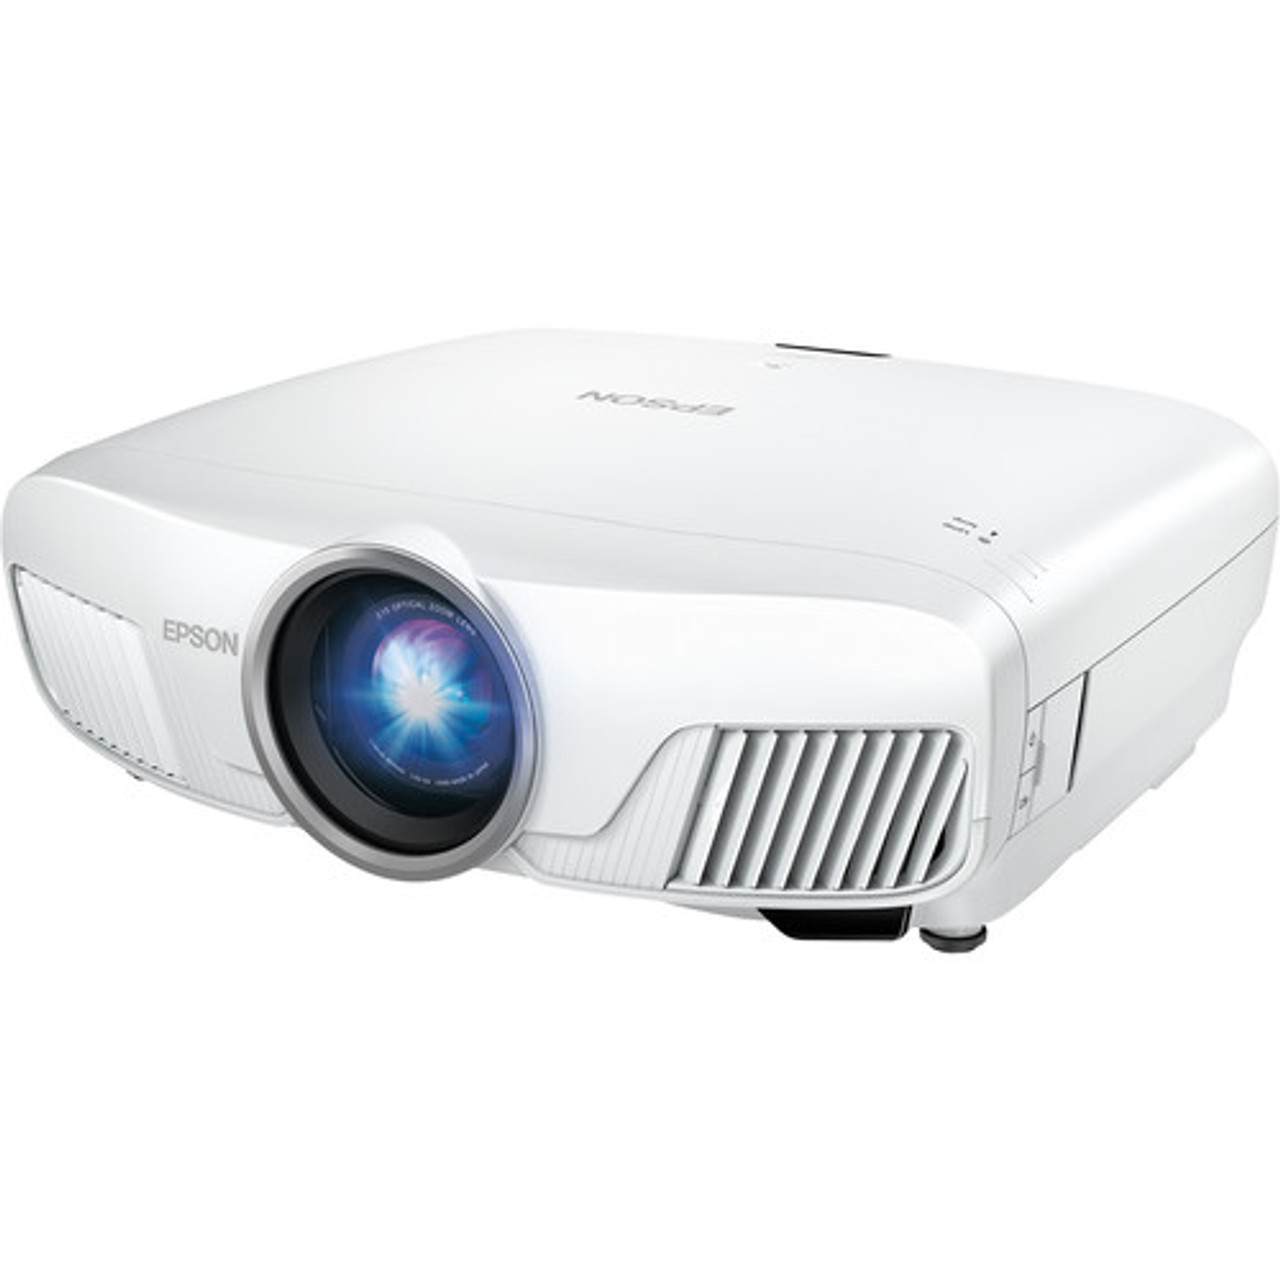 Epson V11H932020-RB Home Cinema 4010 Pixel-Shifted UHD 3LCD Home Theater Projector - Certified Refurbished